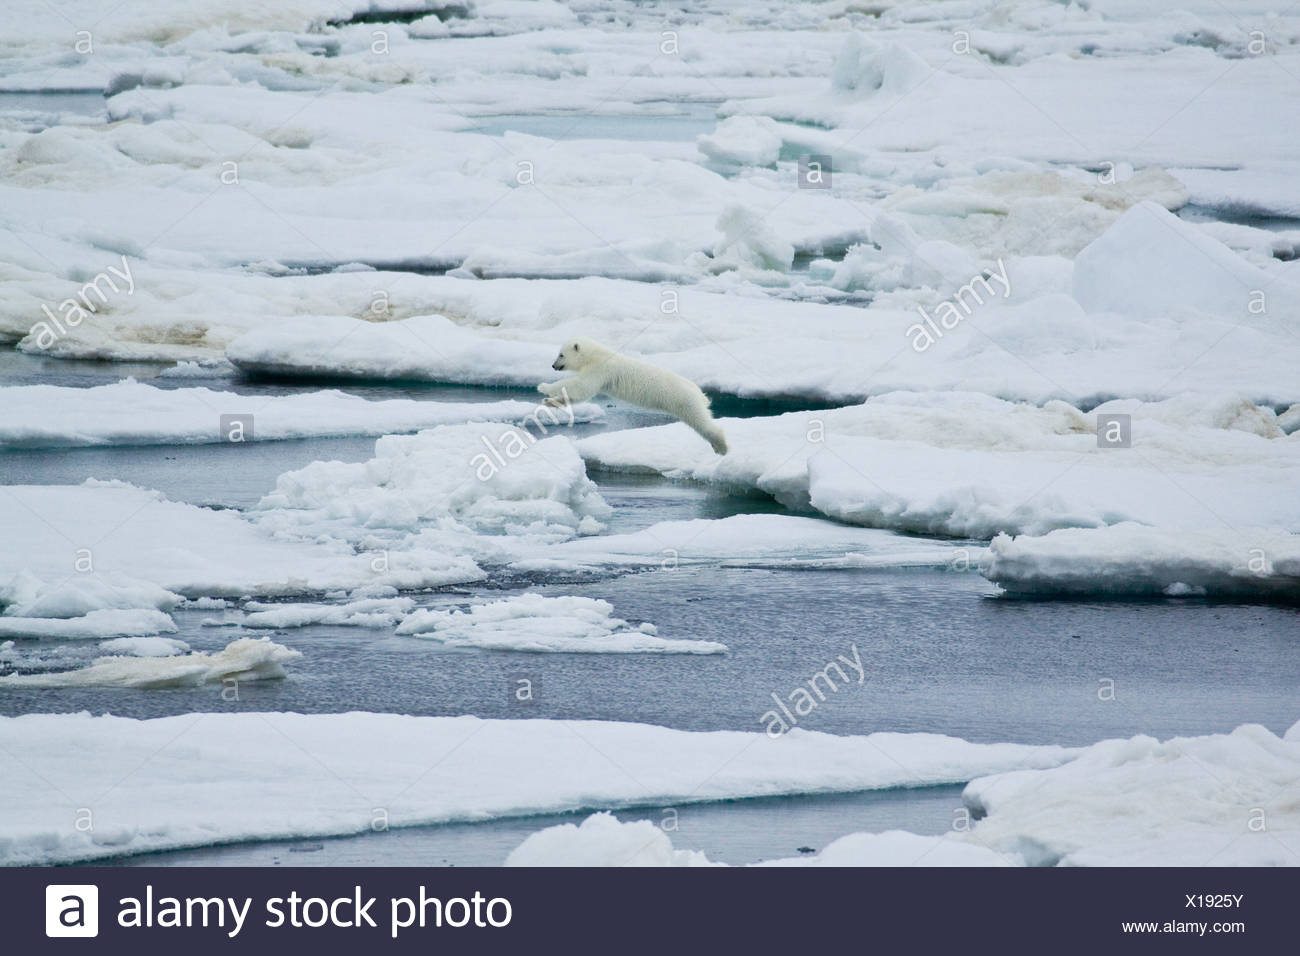 A polar bear cub takes a mighty leap from one ice floe to another. - Stock Image